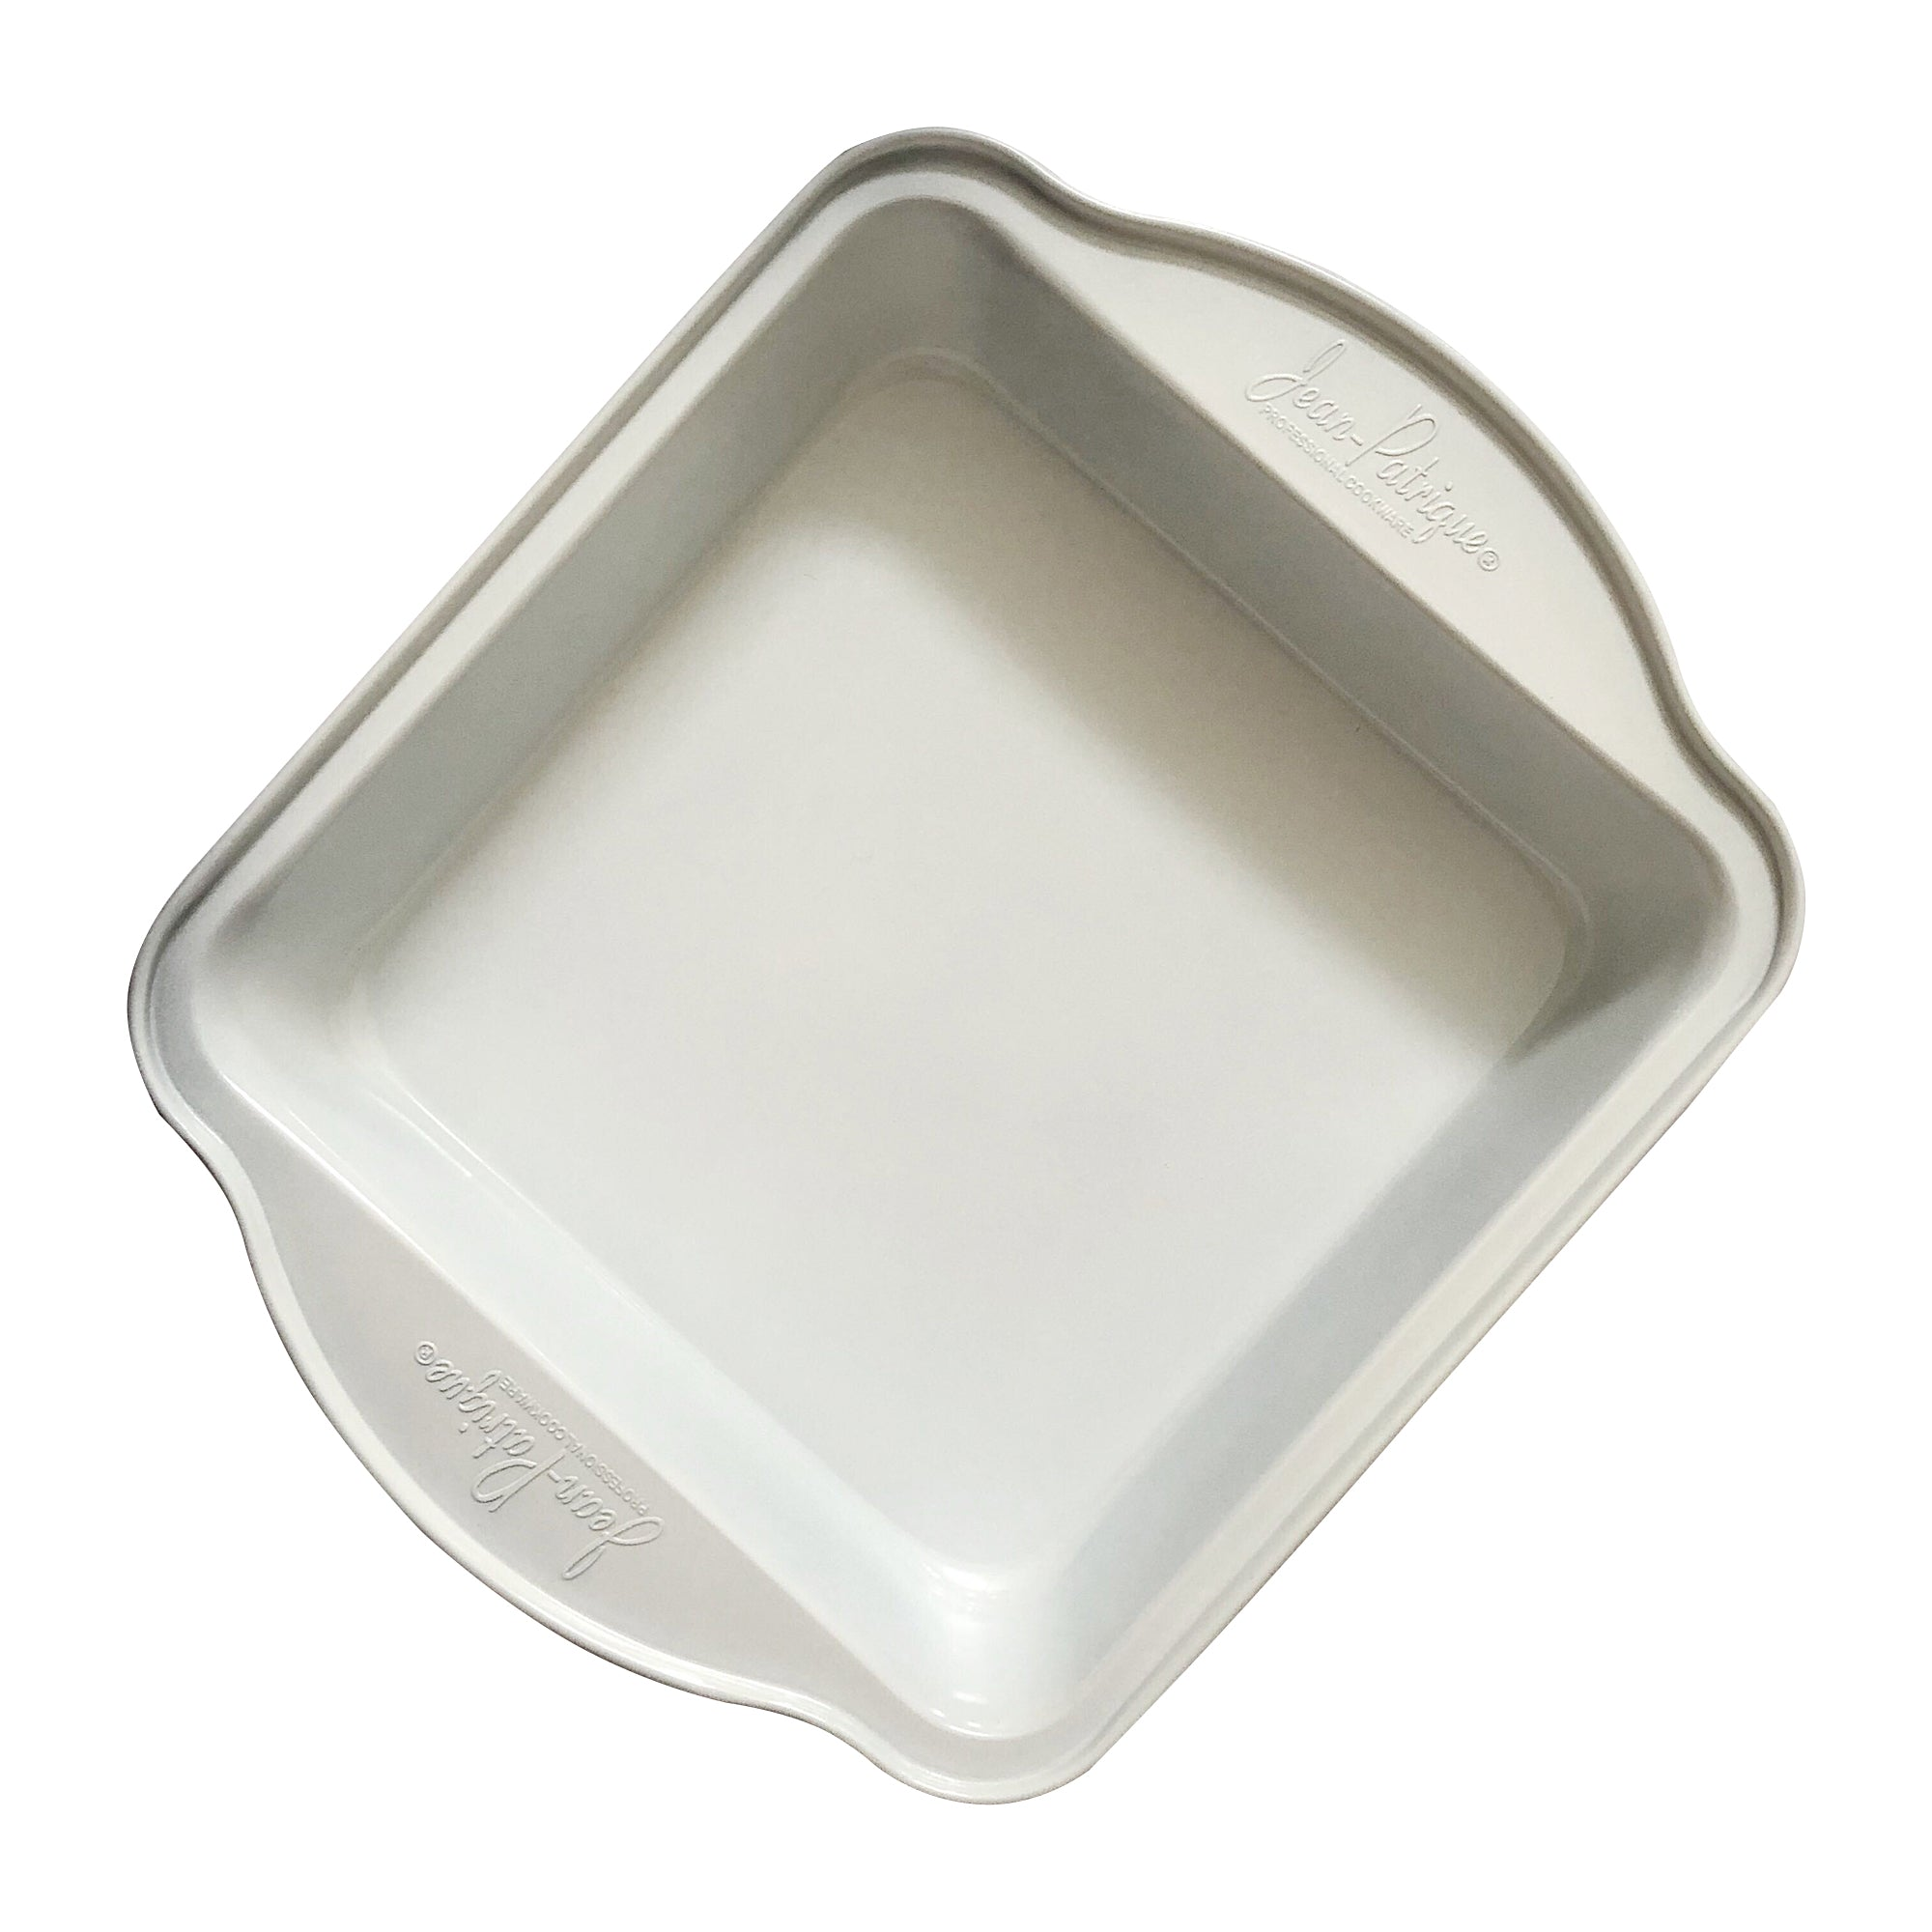 Eco-Cook Non-Stick Ceramic Square Cake Pan - 27cm